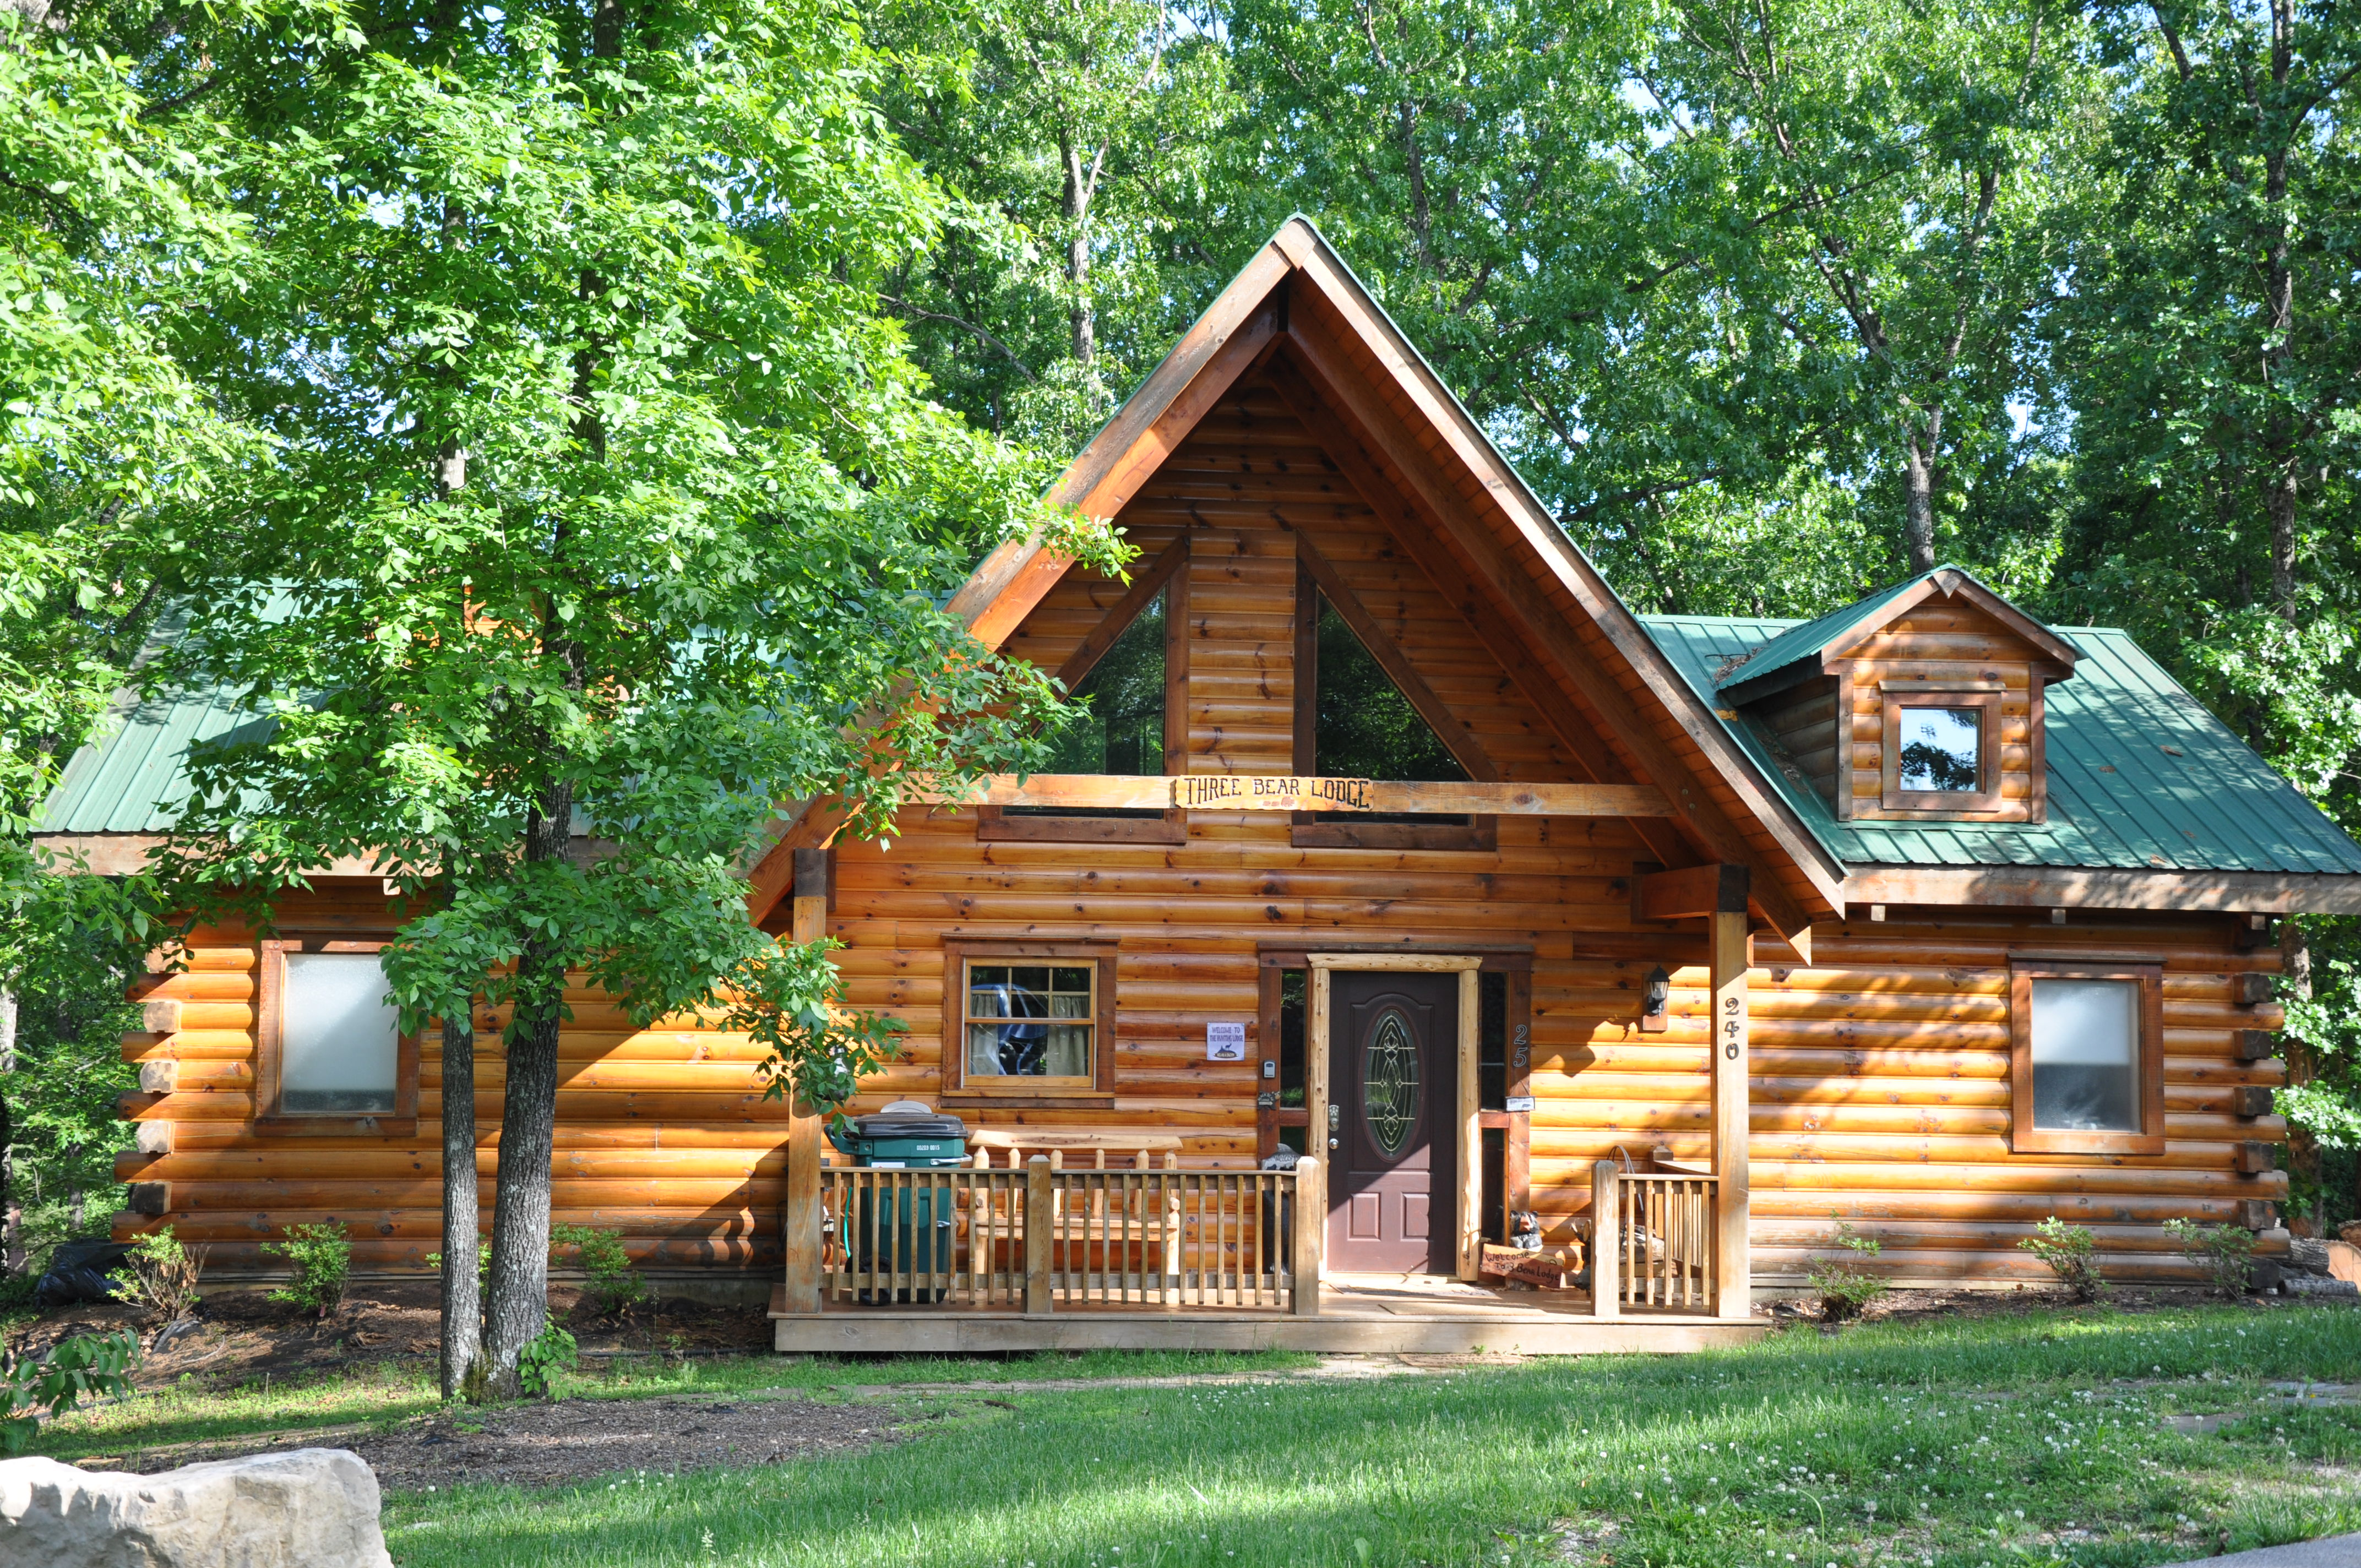 Wonderful image of Amazing Branson Log Cabins » Hotels & Lodging in Lewisville TX with #6F4123 color and 4288x2848 pixels